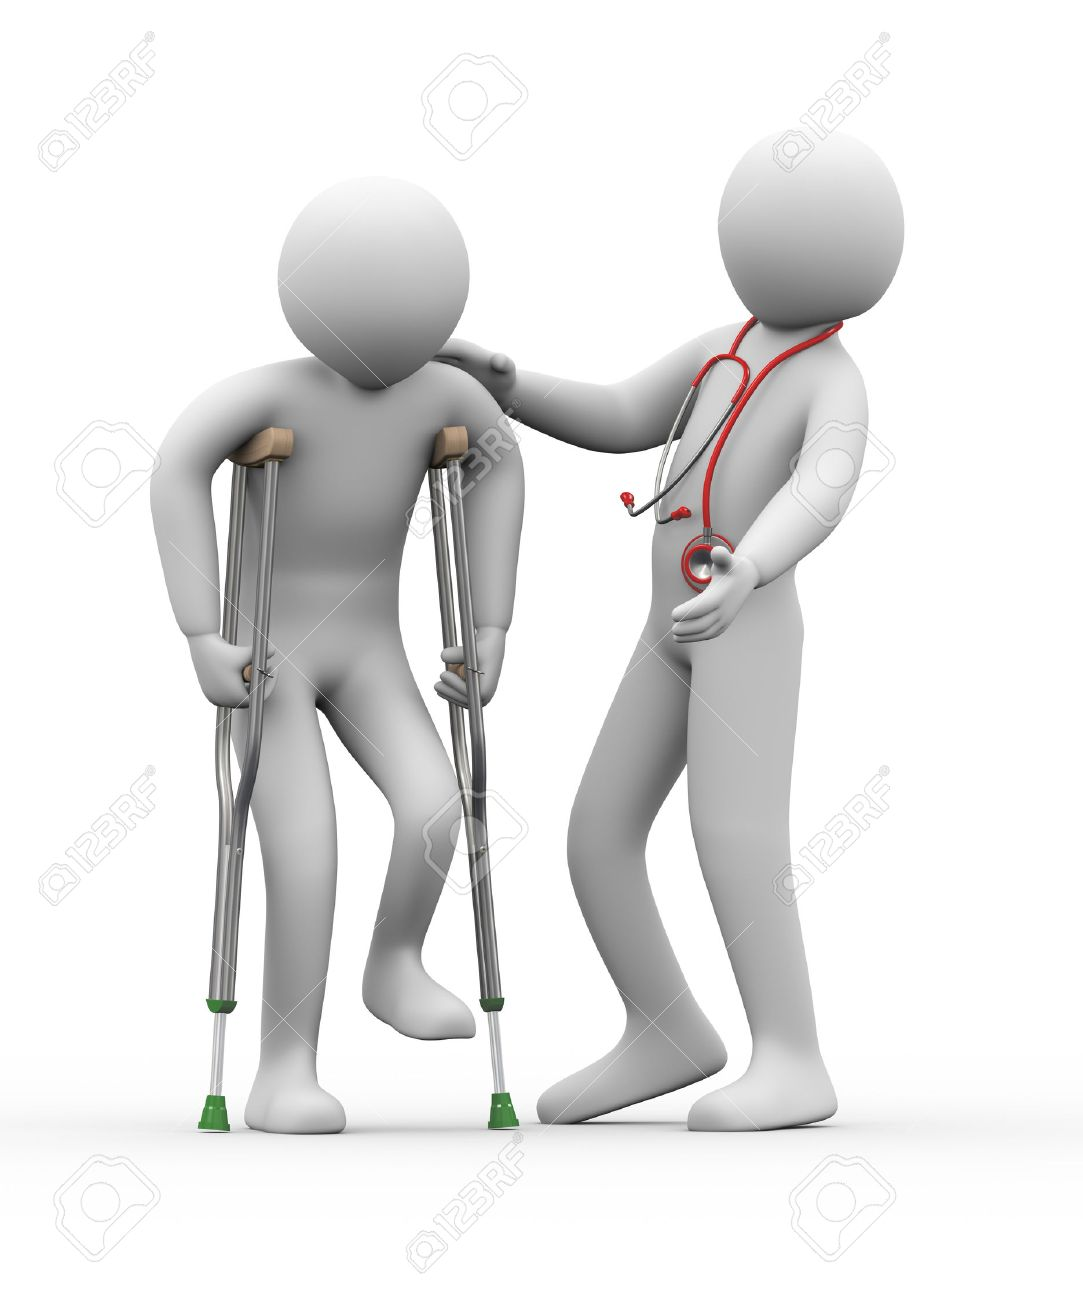 Cartoon physical therapy - 3d Illustration Of Physical Therapist With Stethoscope Helps A Man On Crutches 3d Rendering Of Human